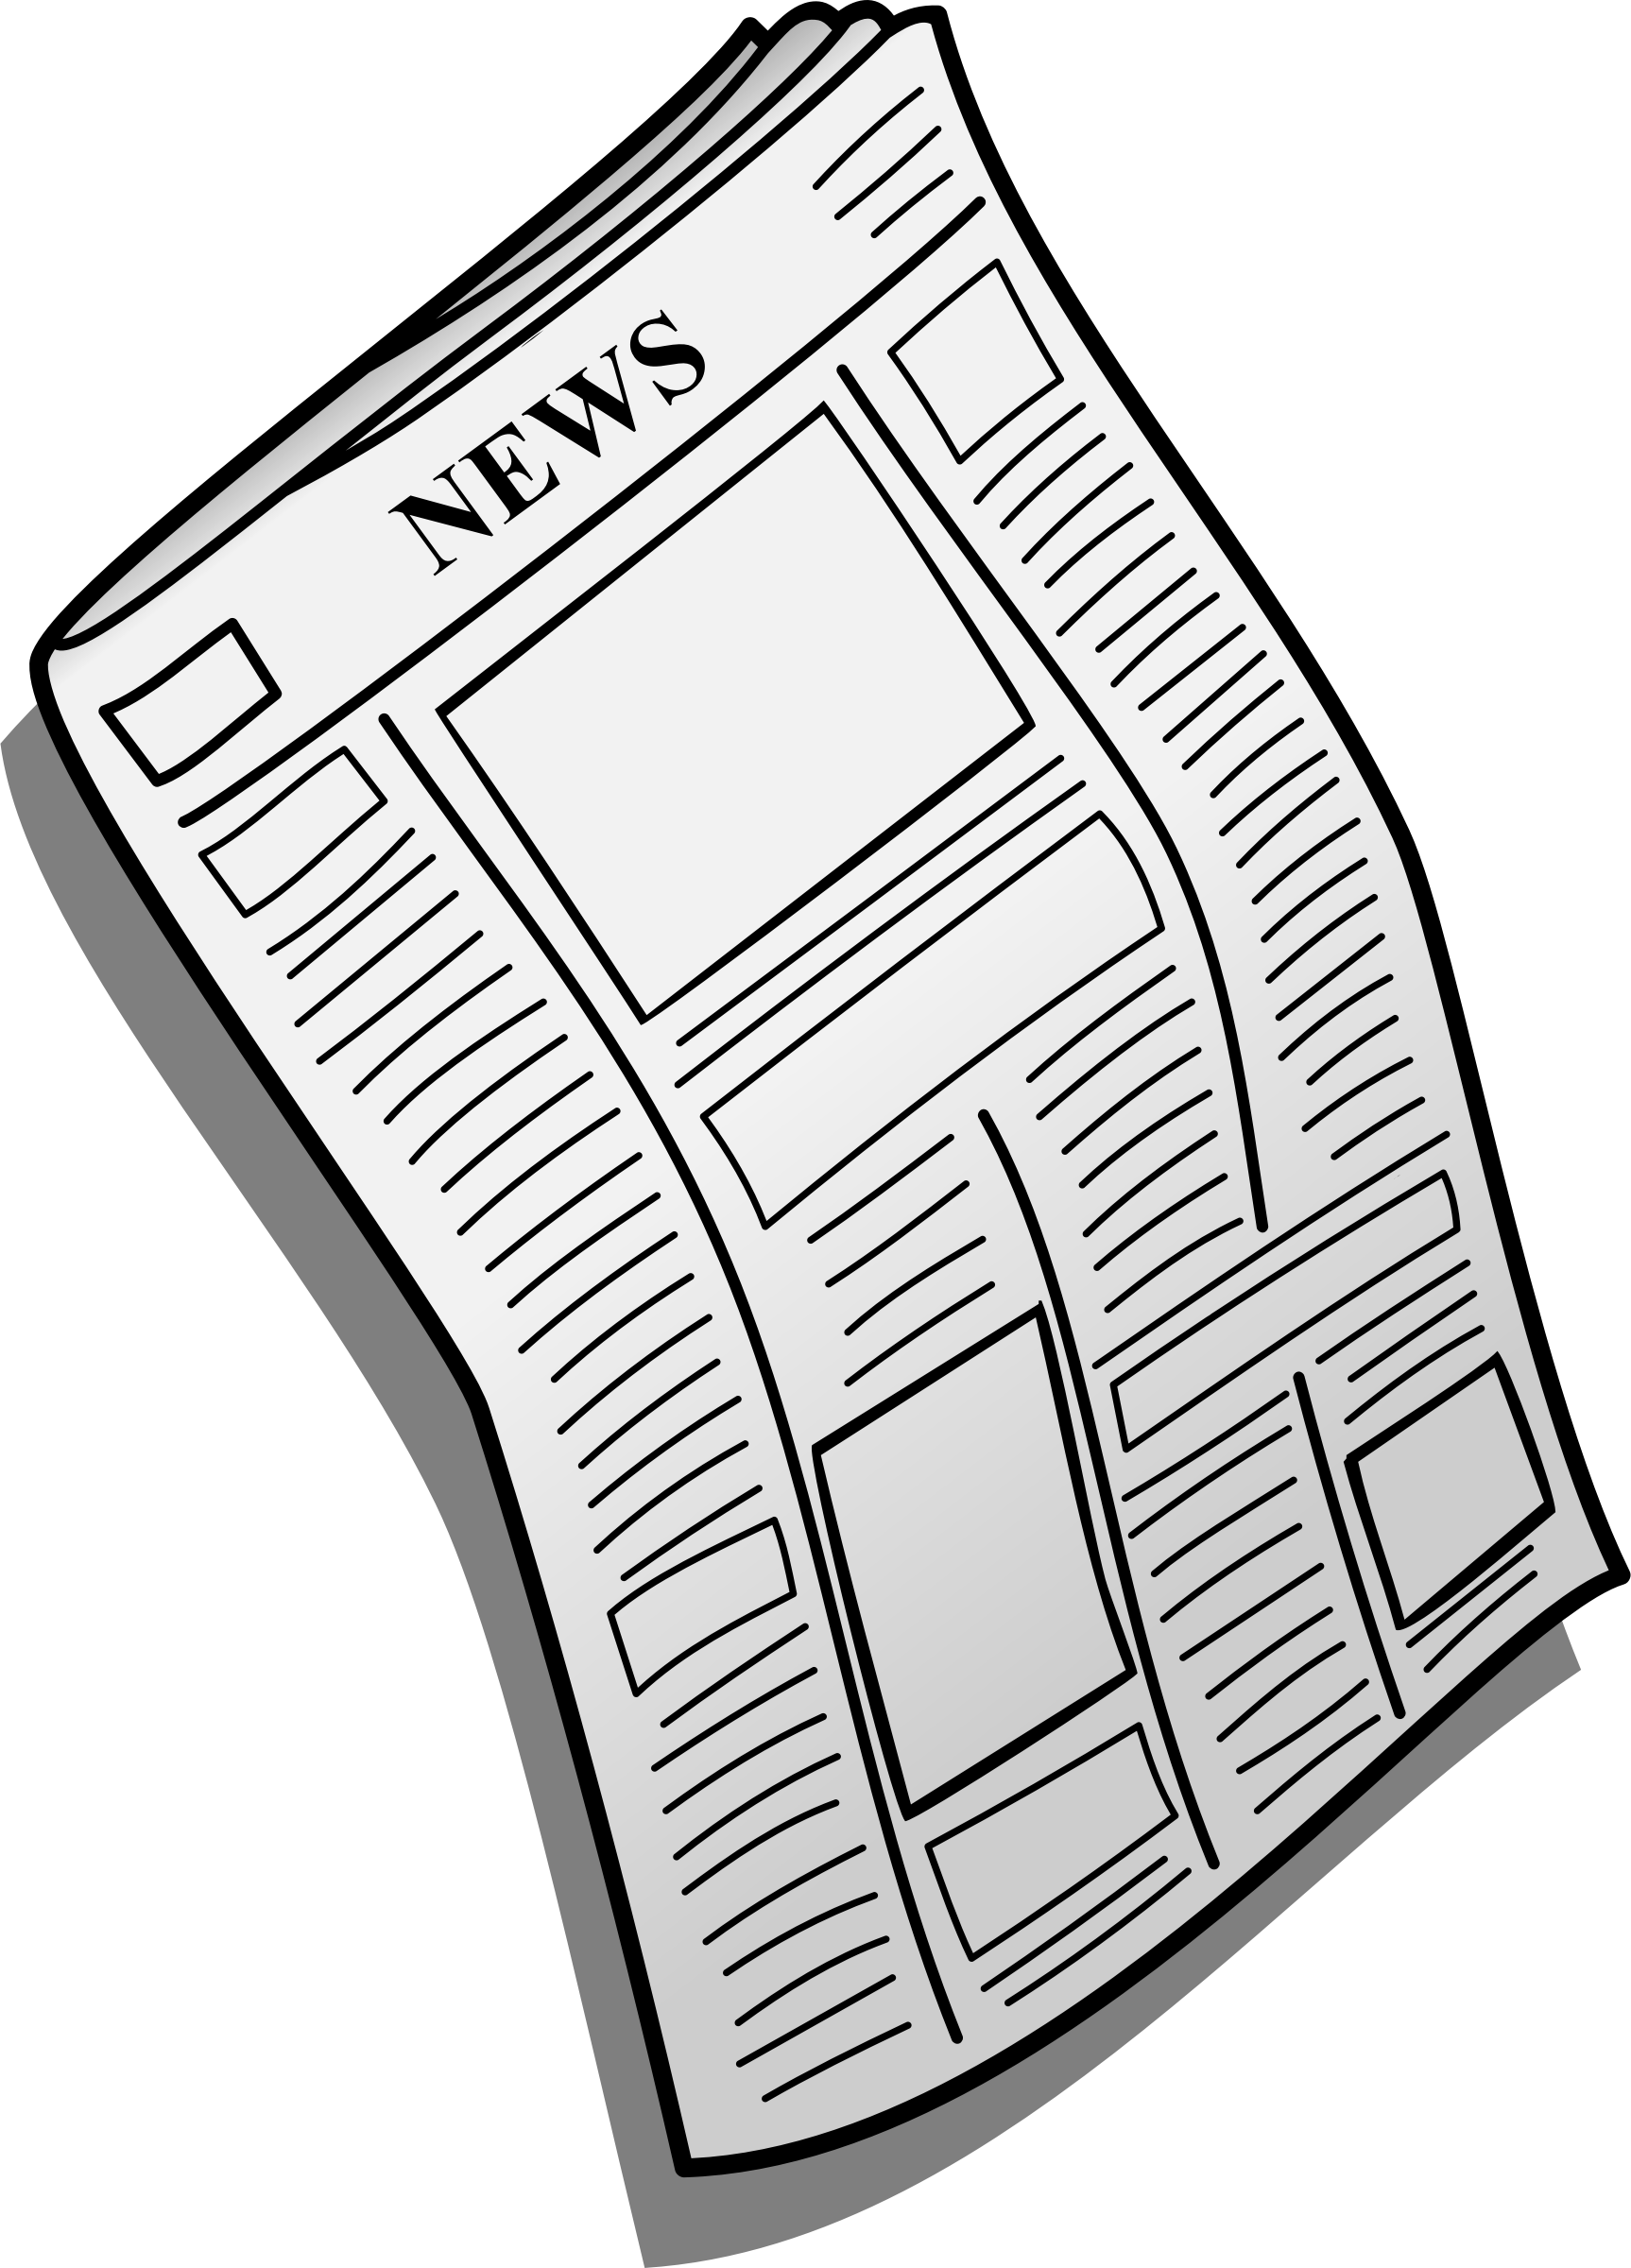 News clipart local news. Newspaper big image png